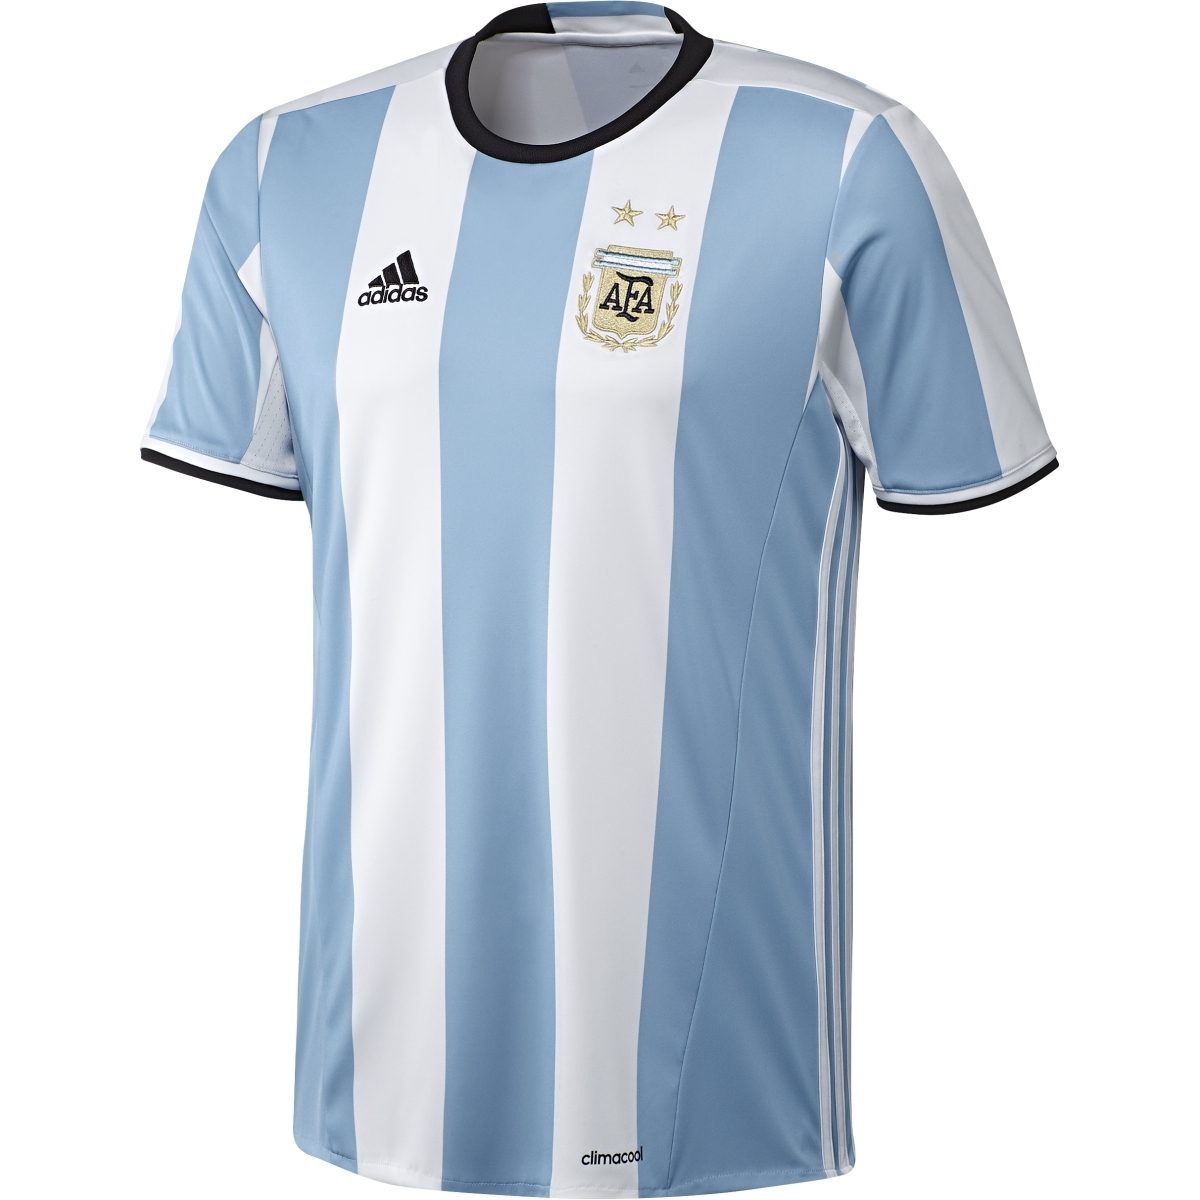 a8a1189cd31de Adidas Youth Argentina Home 2016 Replica Soccer Jersey (Light Blue/White/Black)  | Argentina Soccer Jerseys| Adidas AK0049 | SoccerCorner.com